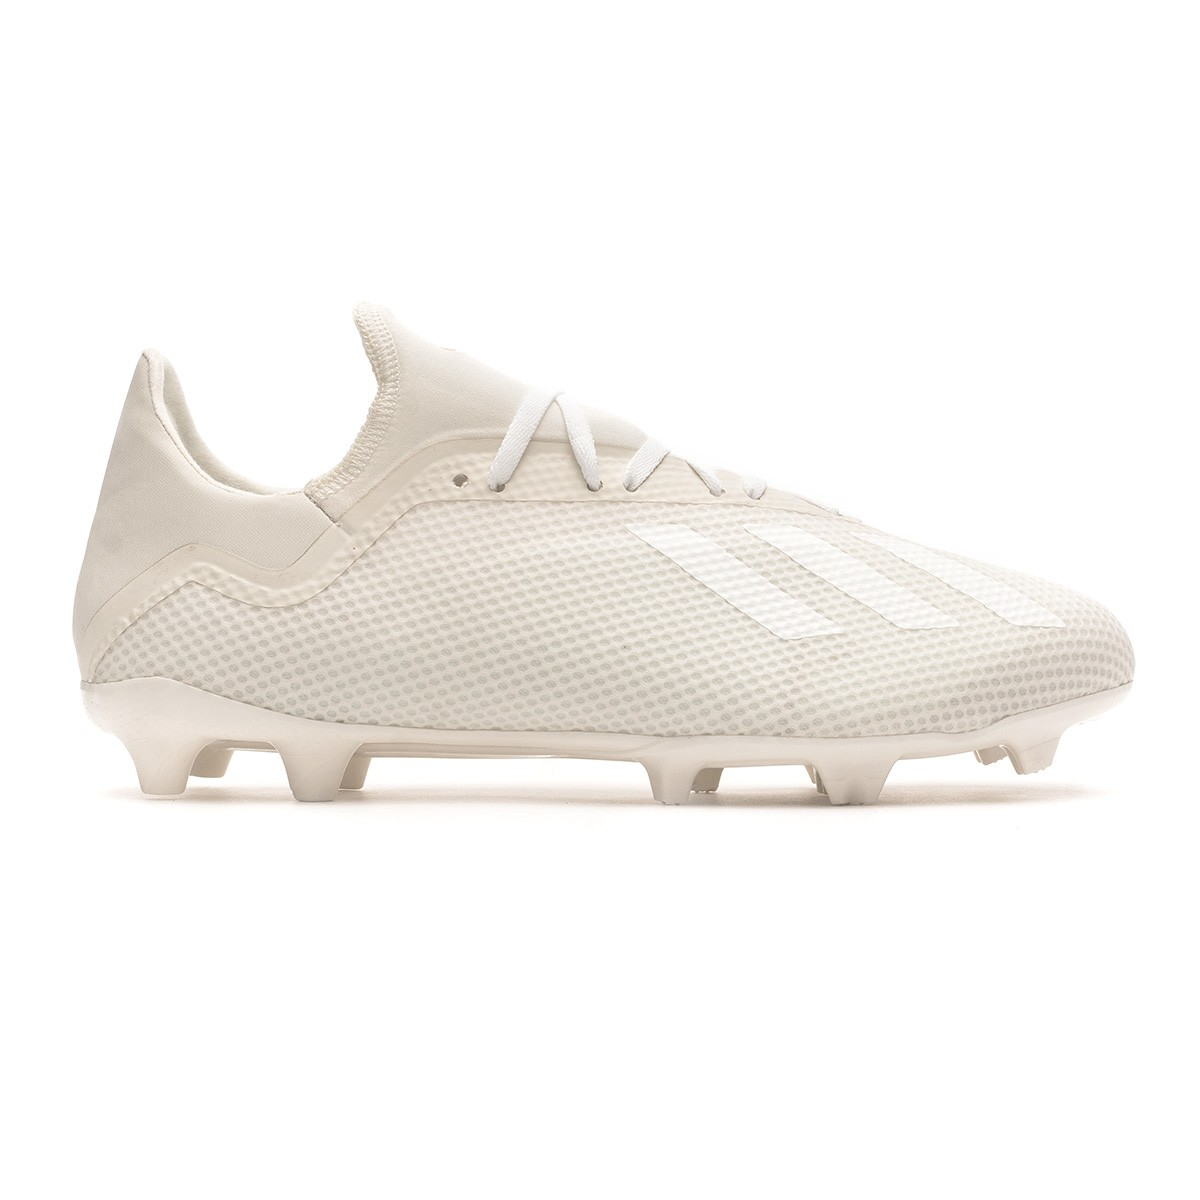 ... Bota X 18.3 FG Off white-White-Core black. CATEGORY. Football boots ·  adidas football boots c6944ba47bd10